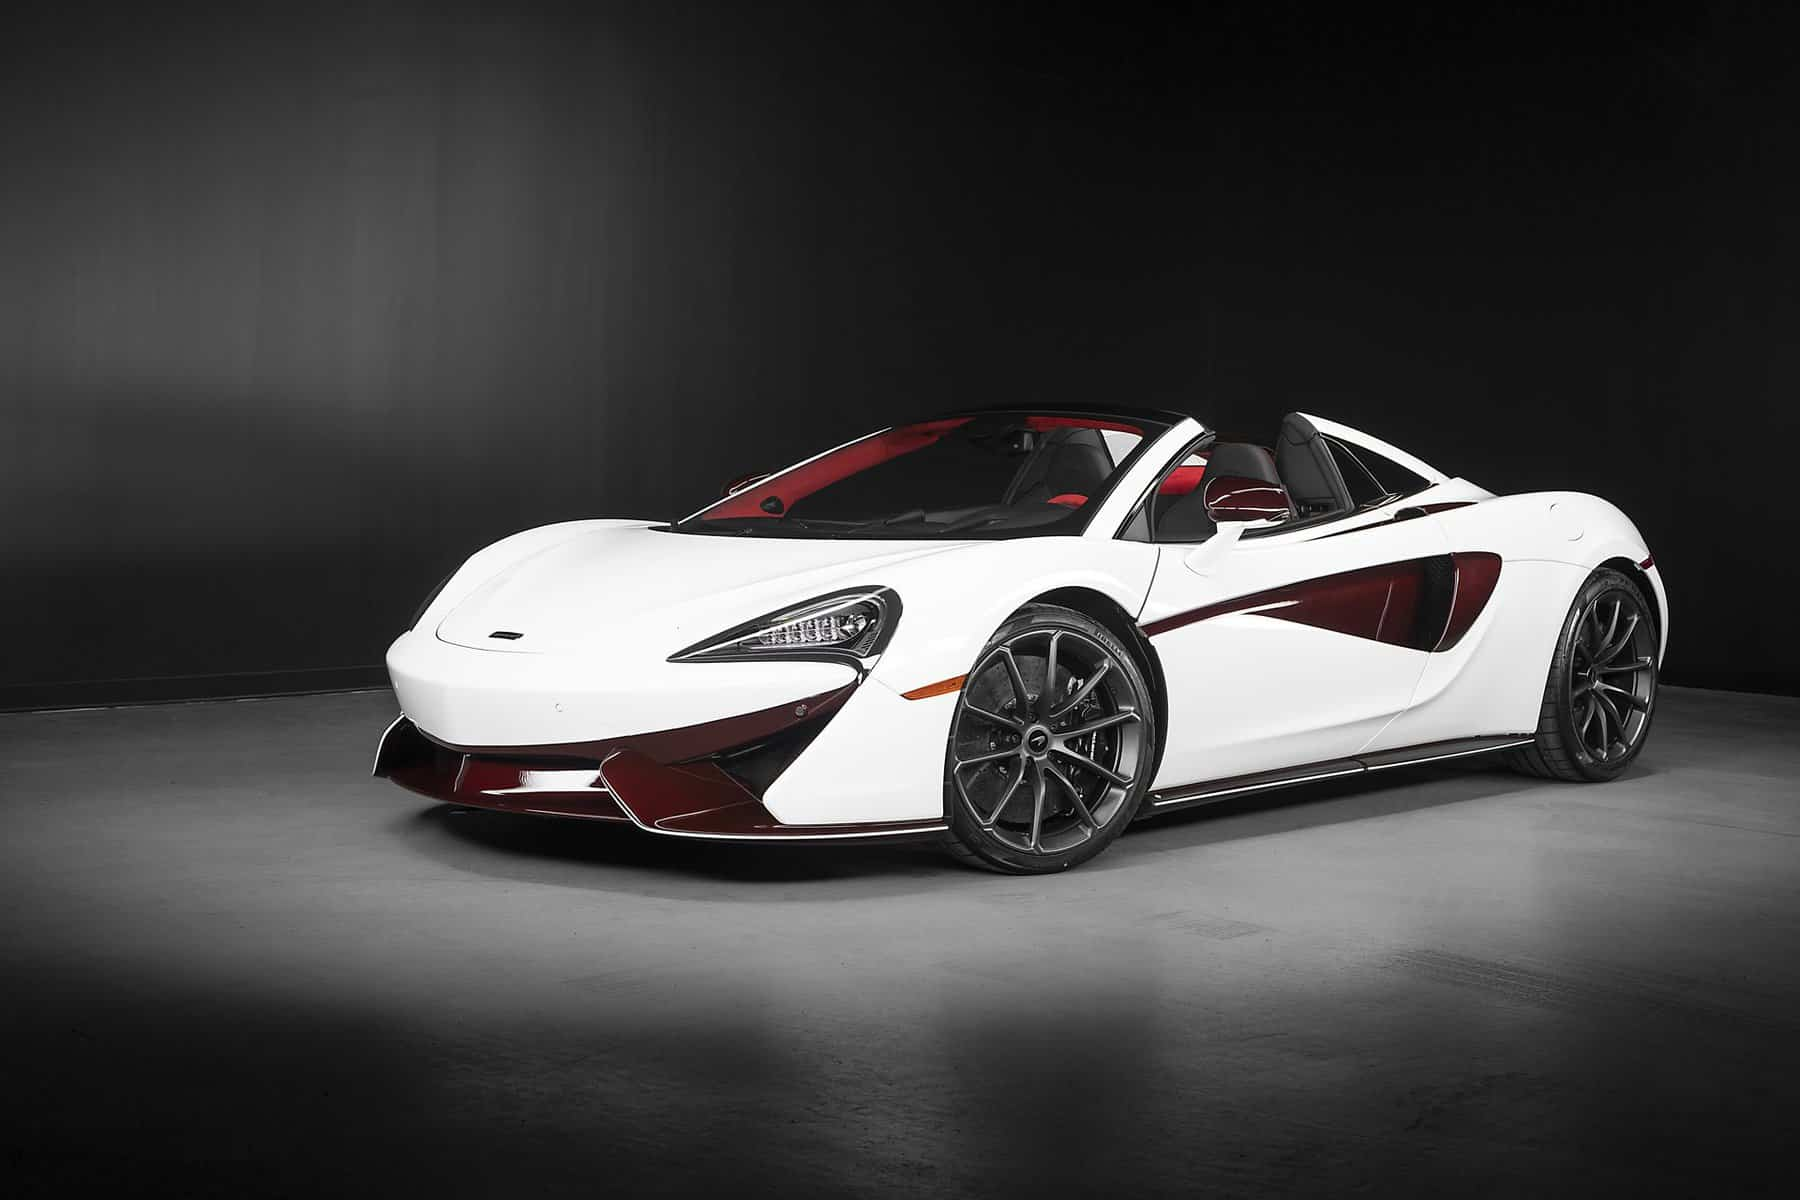 Canadians, this McLaren 570S Spider was Specially Made for You!